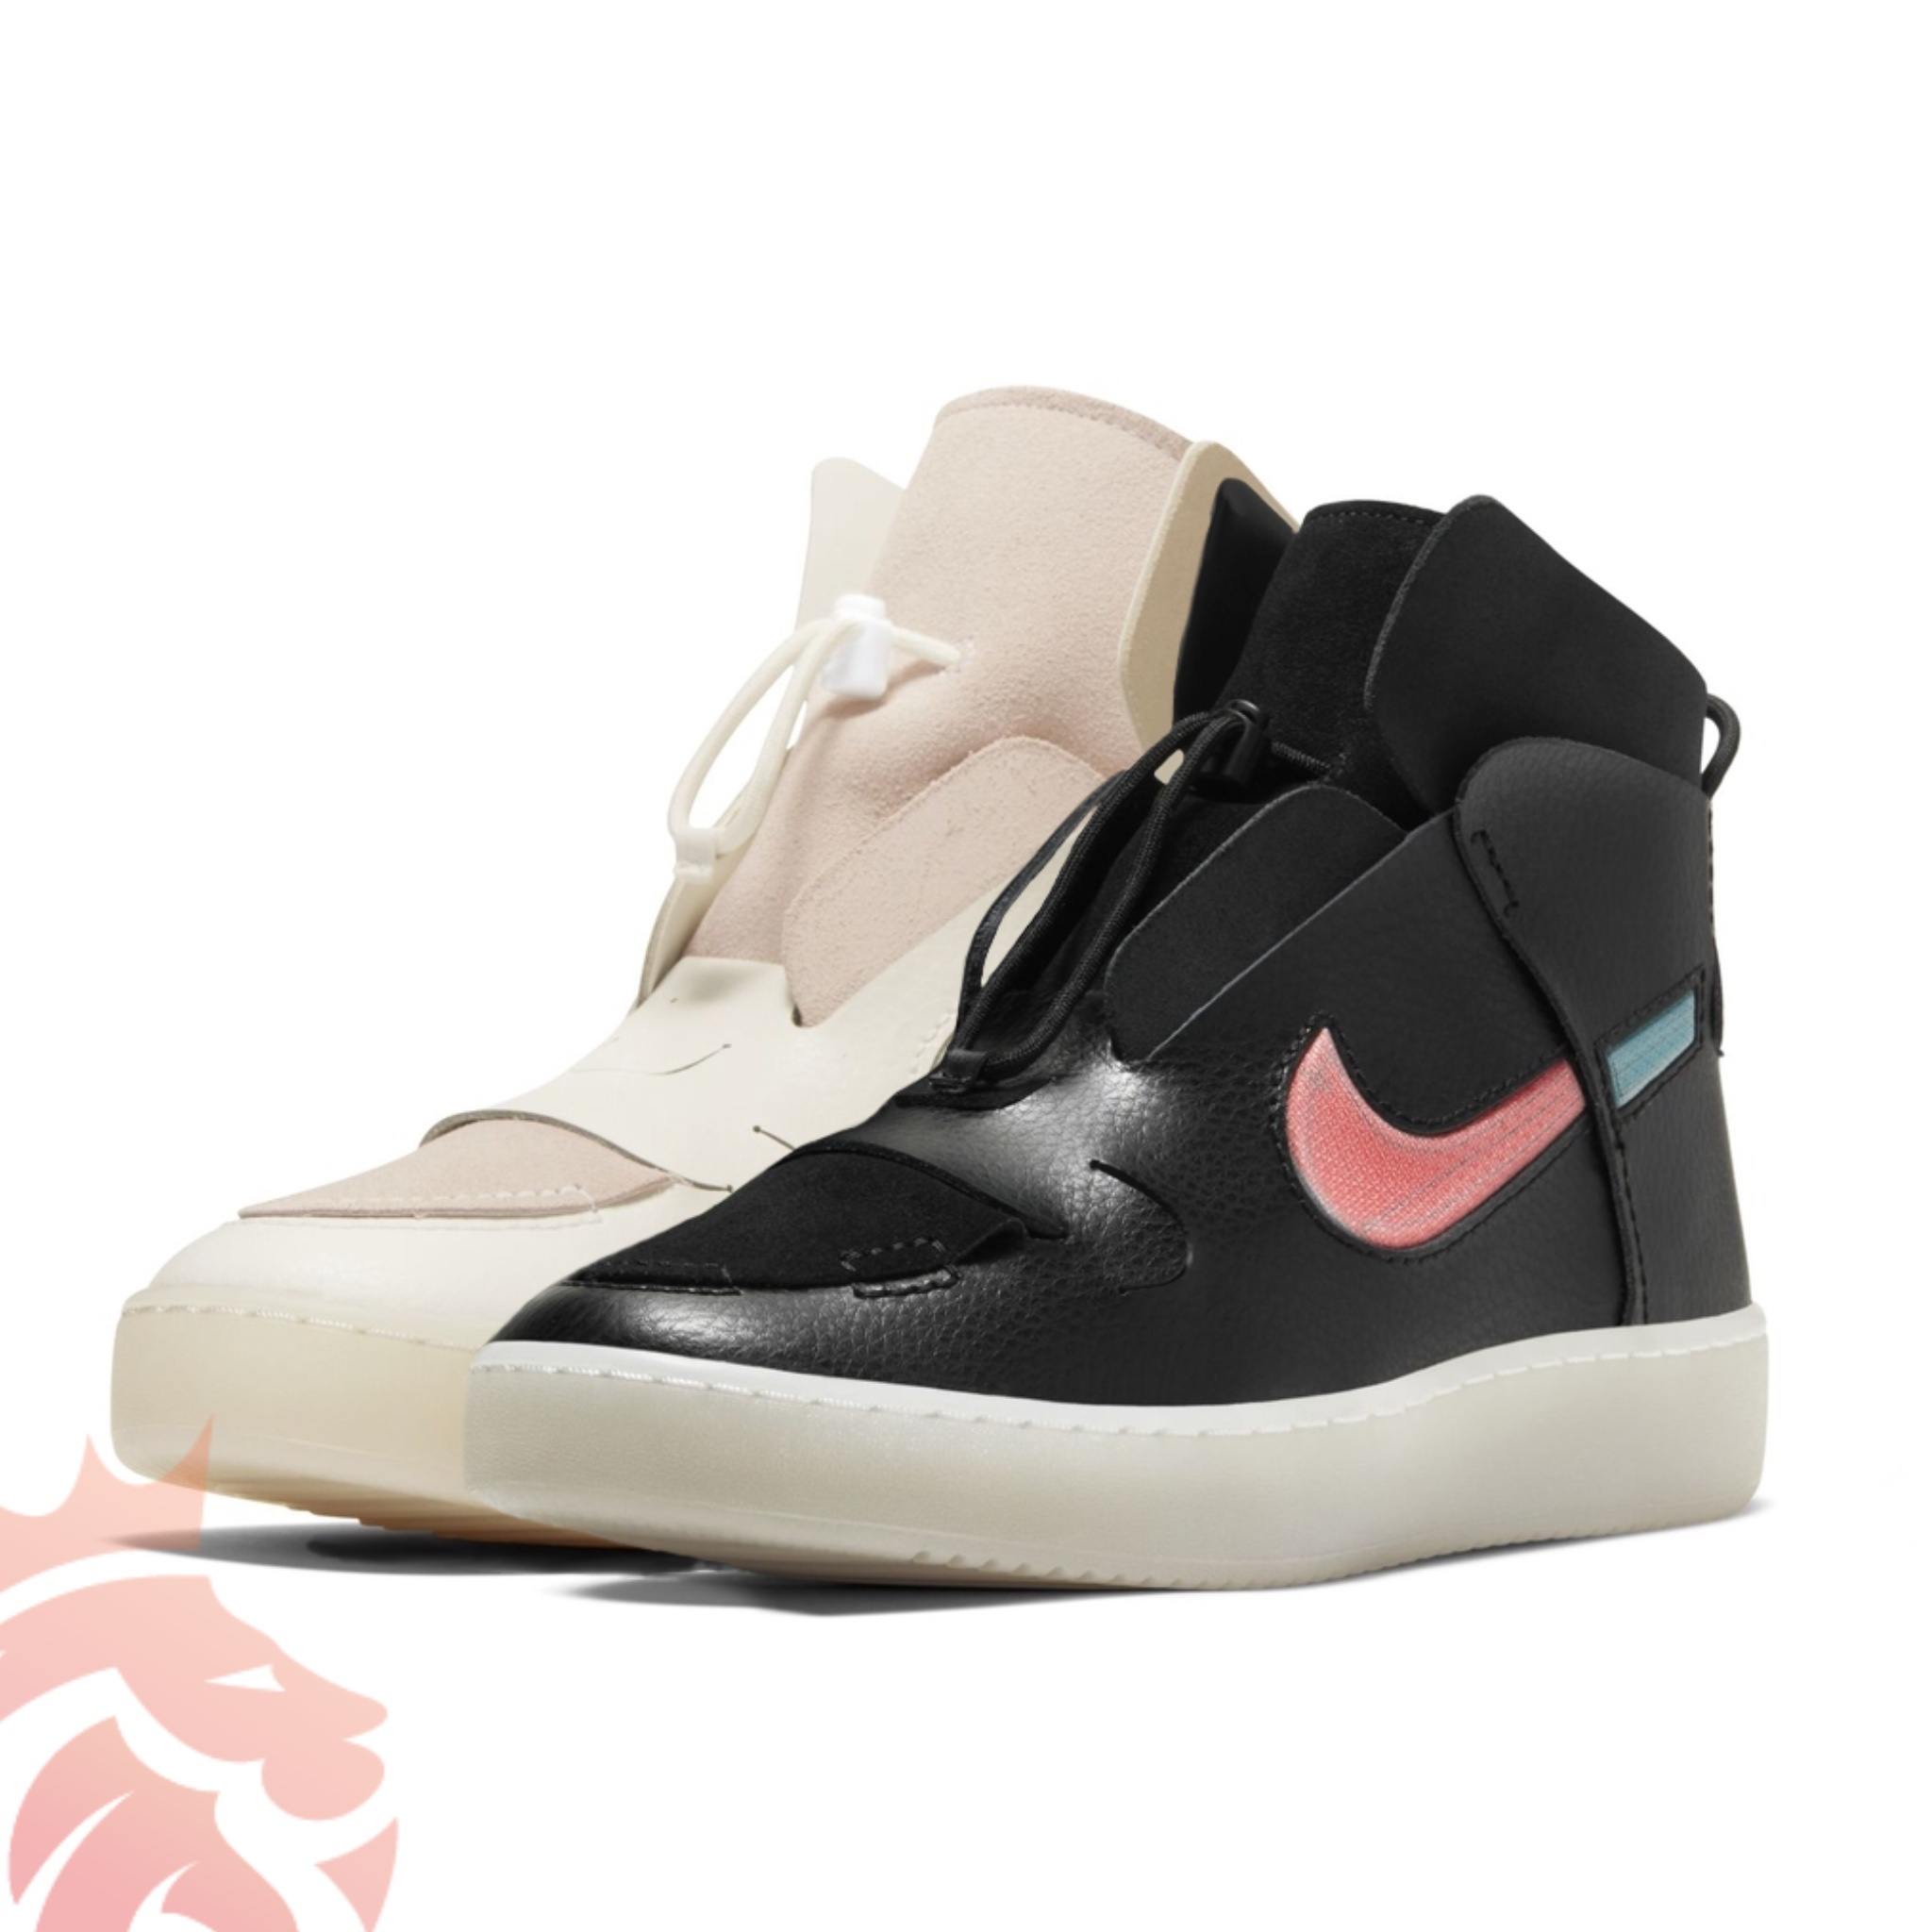 WMNS Nike Vandalized SP20 Black and Cream Colorways